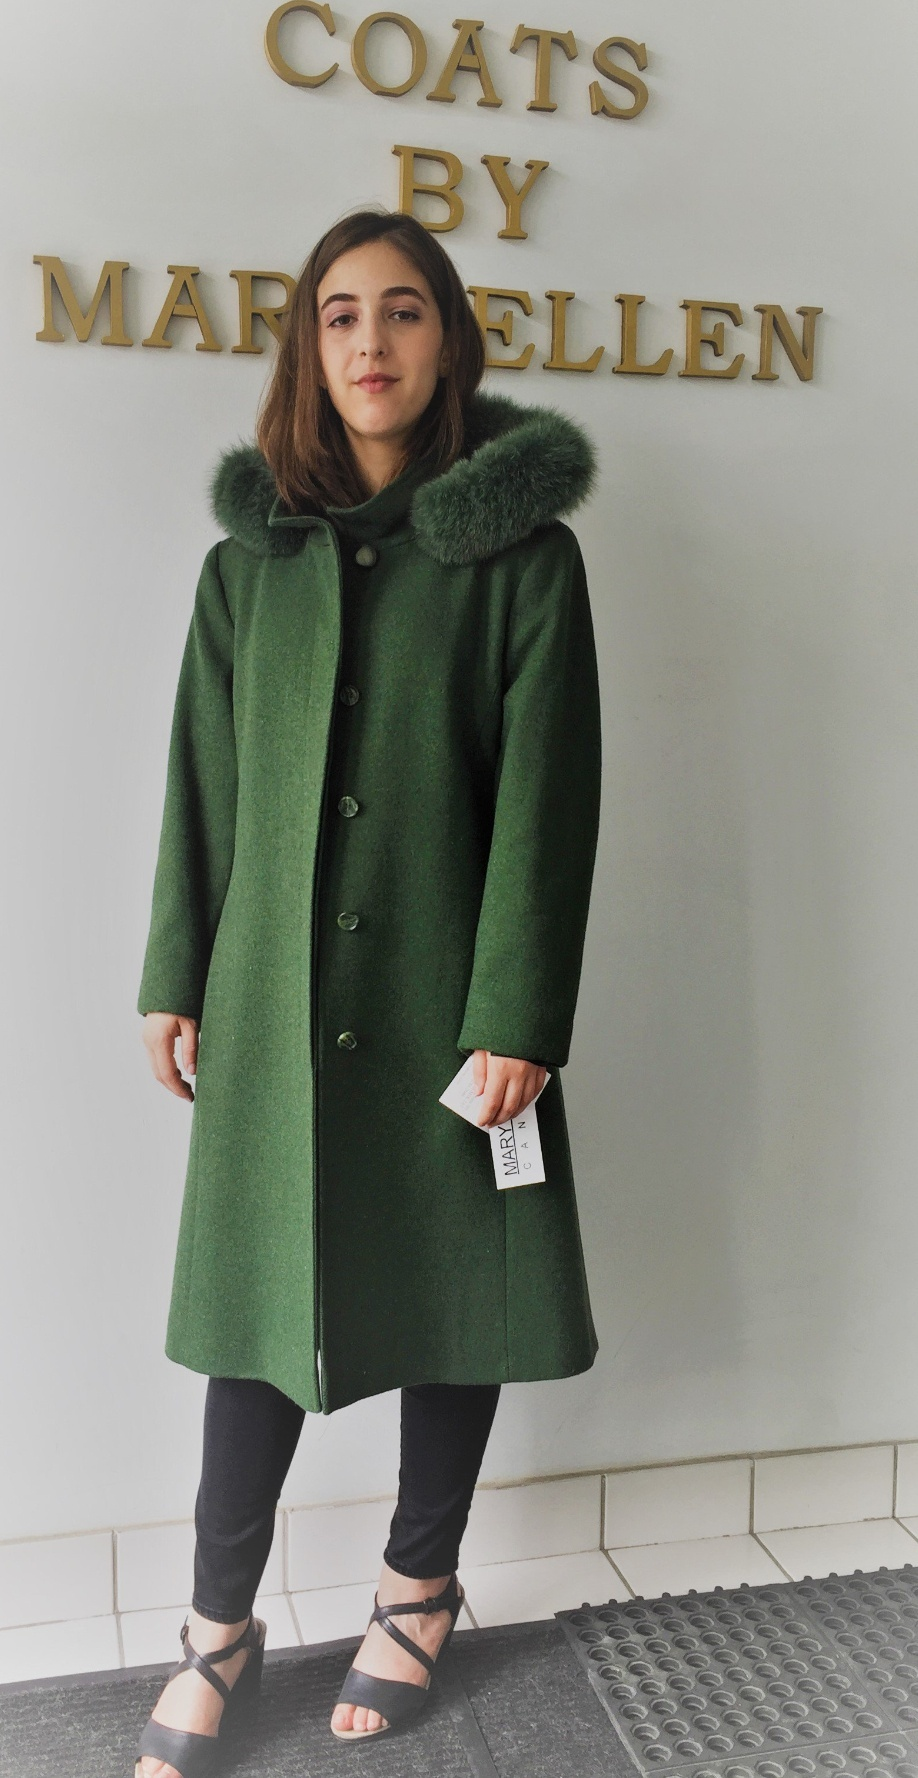 Style#4066-18   Kelly Green  100% Pure Virgin Wool  Features:  Classic styling and optimum comfort.  Detachable genuine fox trimmed  hood. Coat has a stand  collar, ideal for keeping the chill out on cold windy days. Full chamois lining.  Includes extra buttons.  In-Stock Colours:  Kelly Green, Plum, Sangria, Black,  Navy  or can be made in the colour of your choice.  Various Fabrics: Cashmere and Cashmere/Wool Blends,  Alpaca blends, 100% Pure Virgin Wool and  other fine fabrics   Sizes: S, M, L  Price:  $599 and up